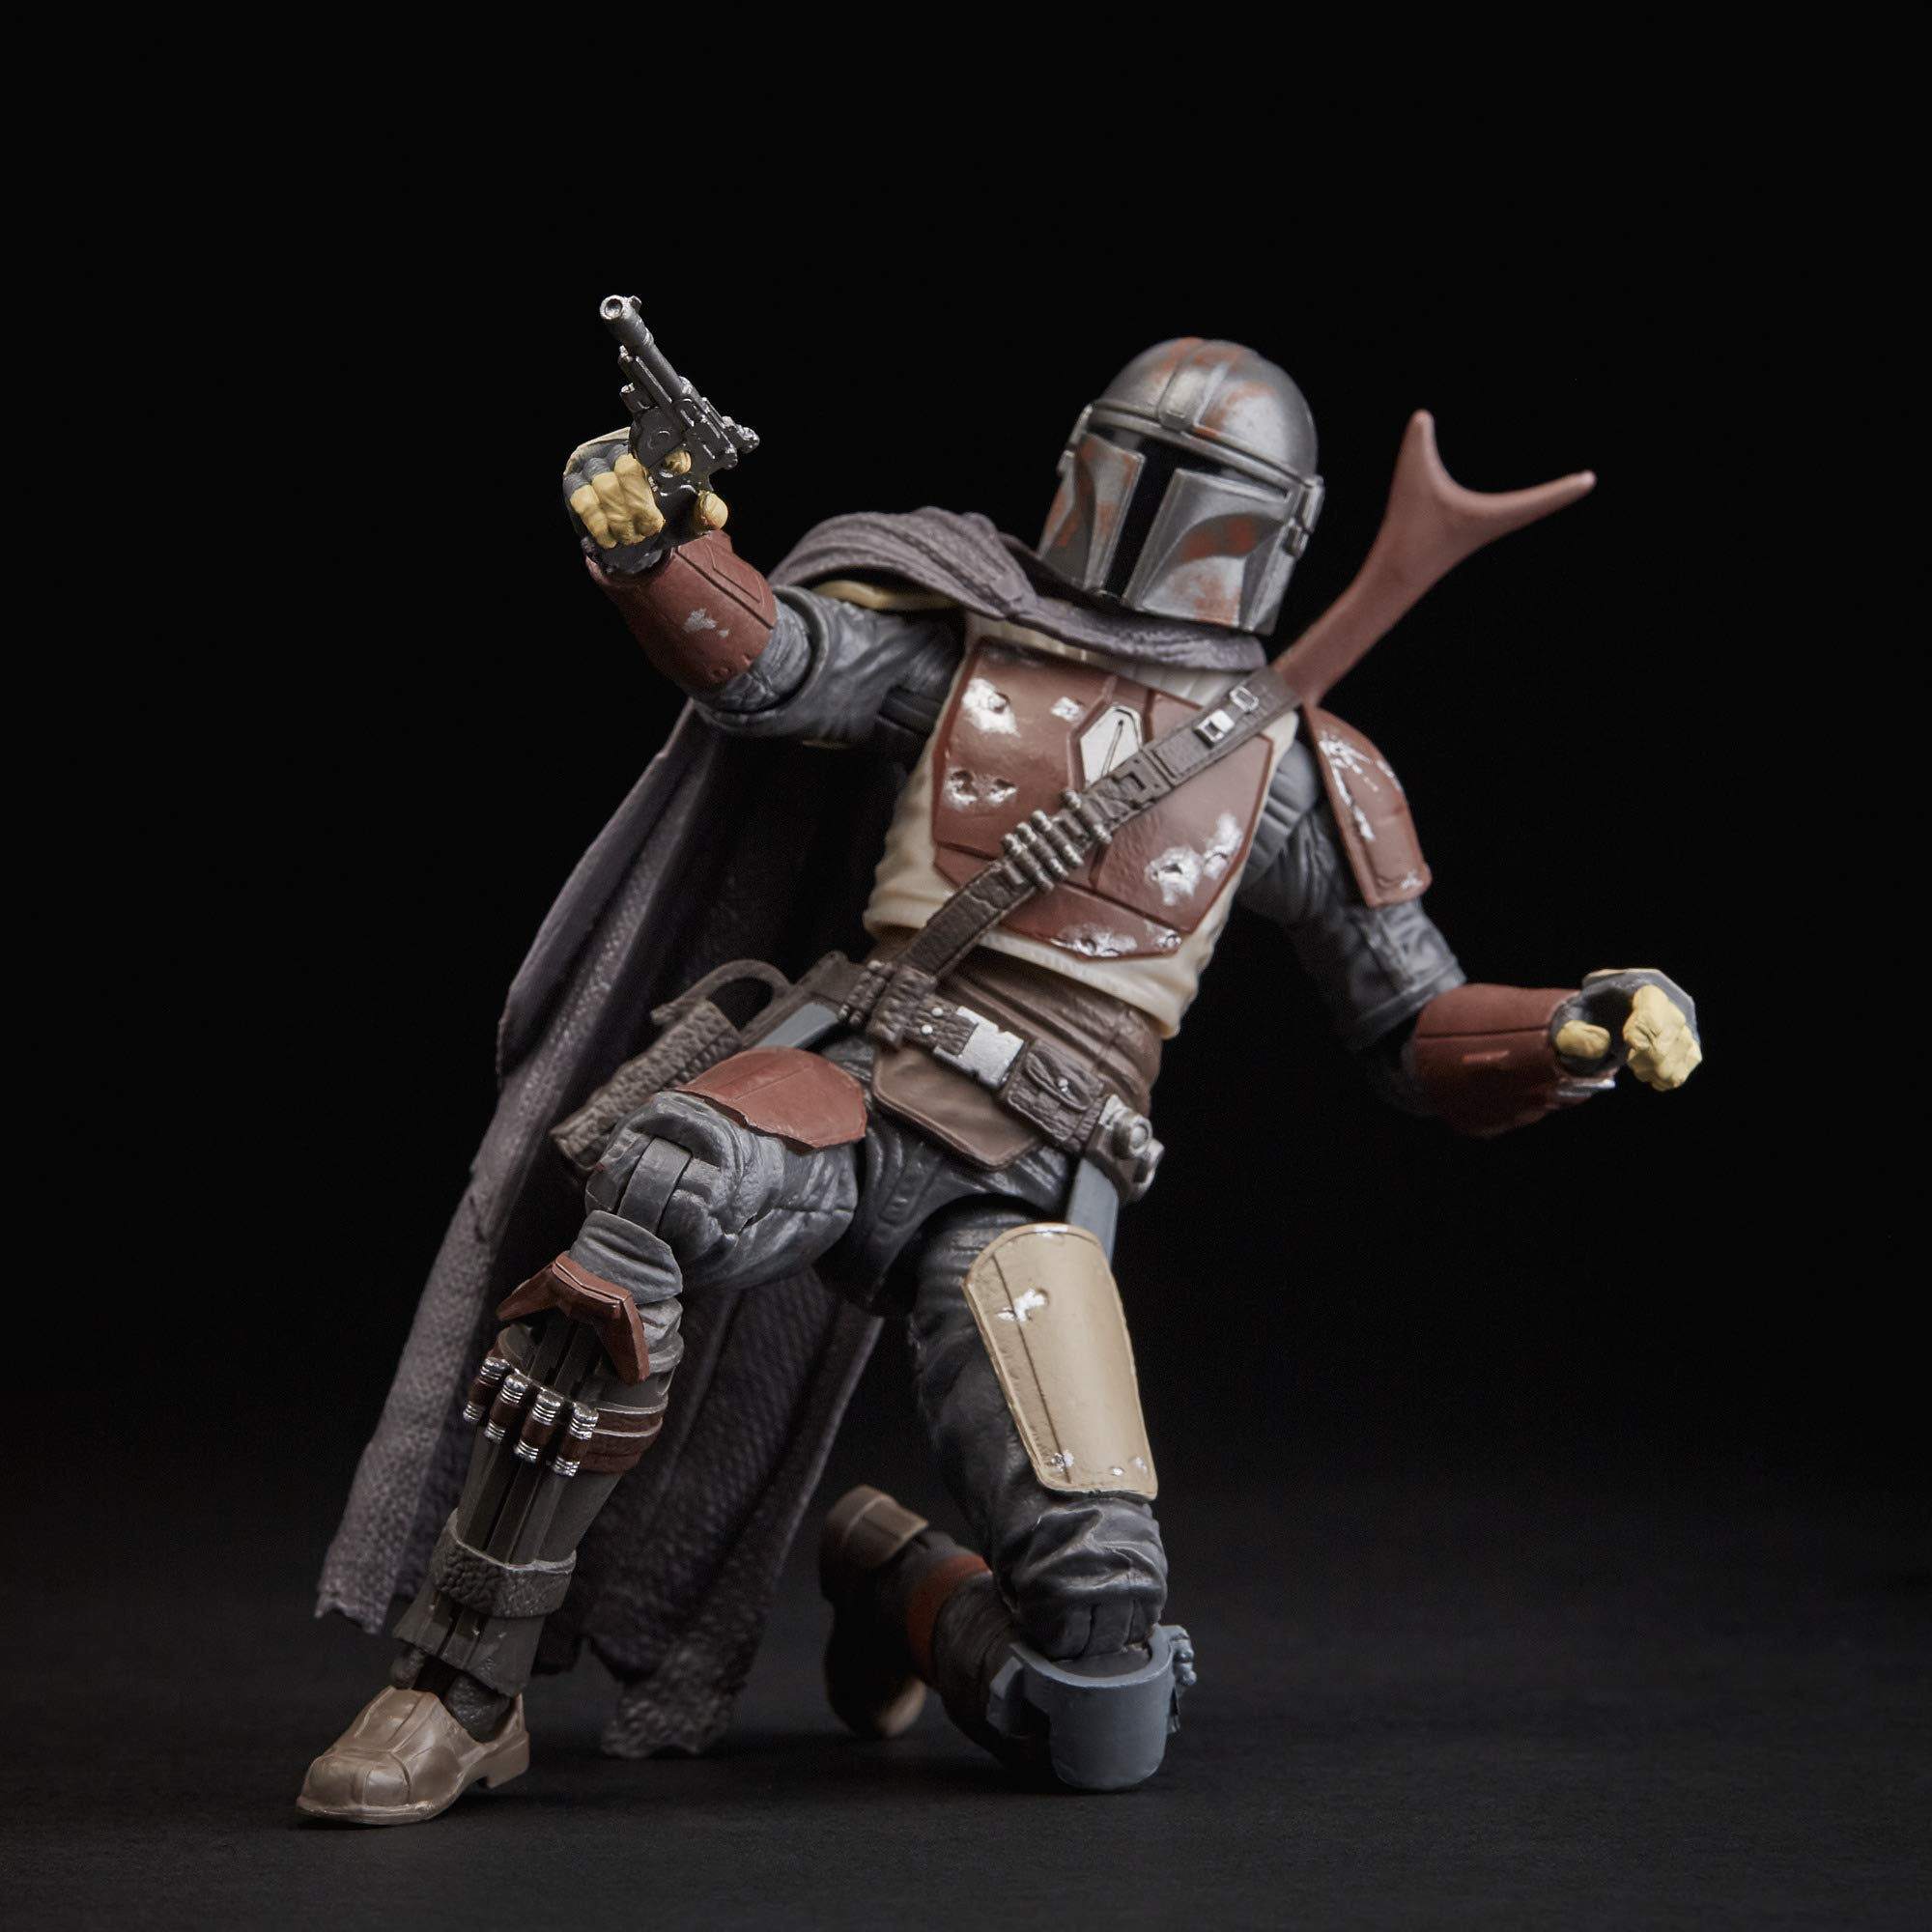 """Star Wars The Black Series The Mandalorian Toy 6"""" Scale Collectible Action Figure, Toys for Kids Ages 4 & Up"""